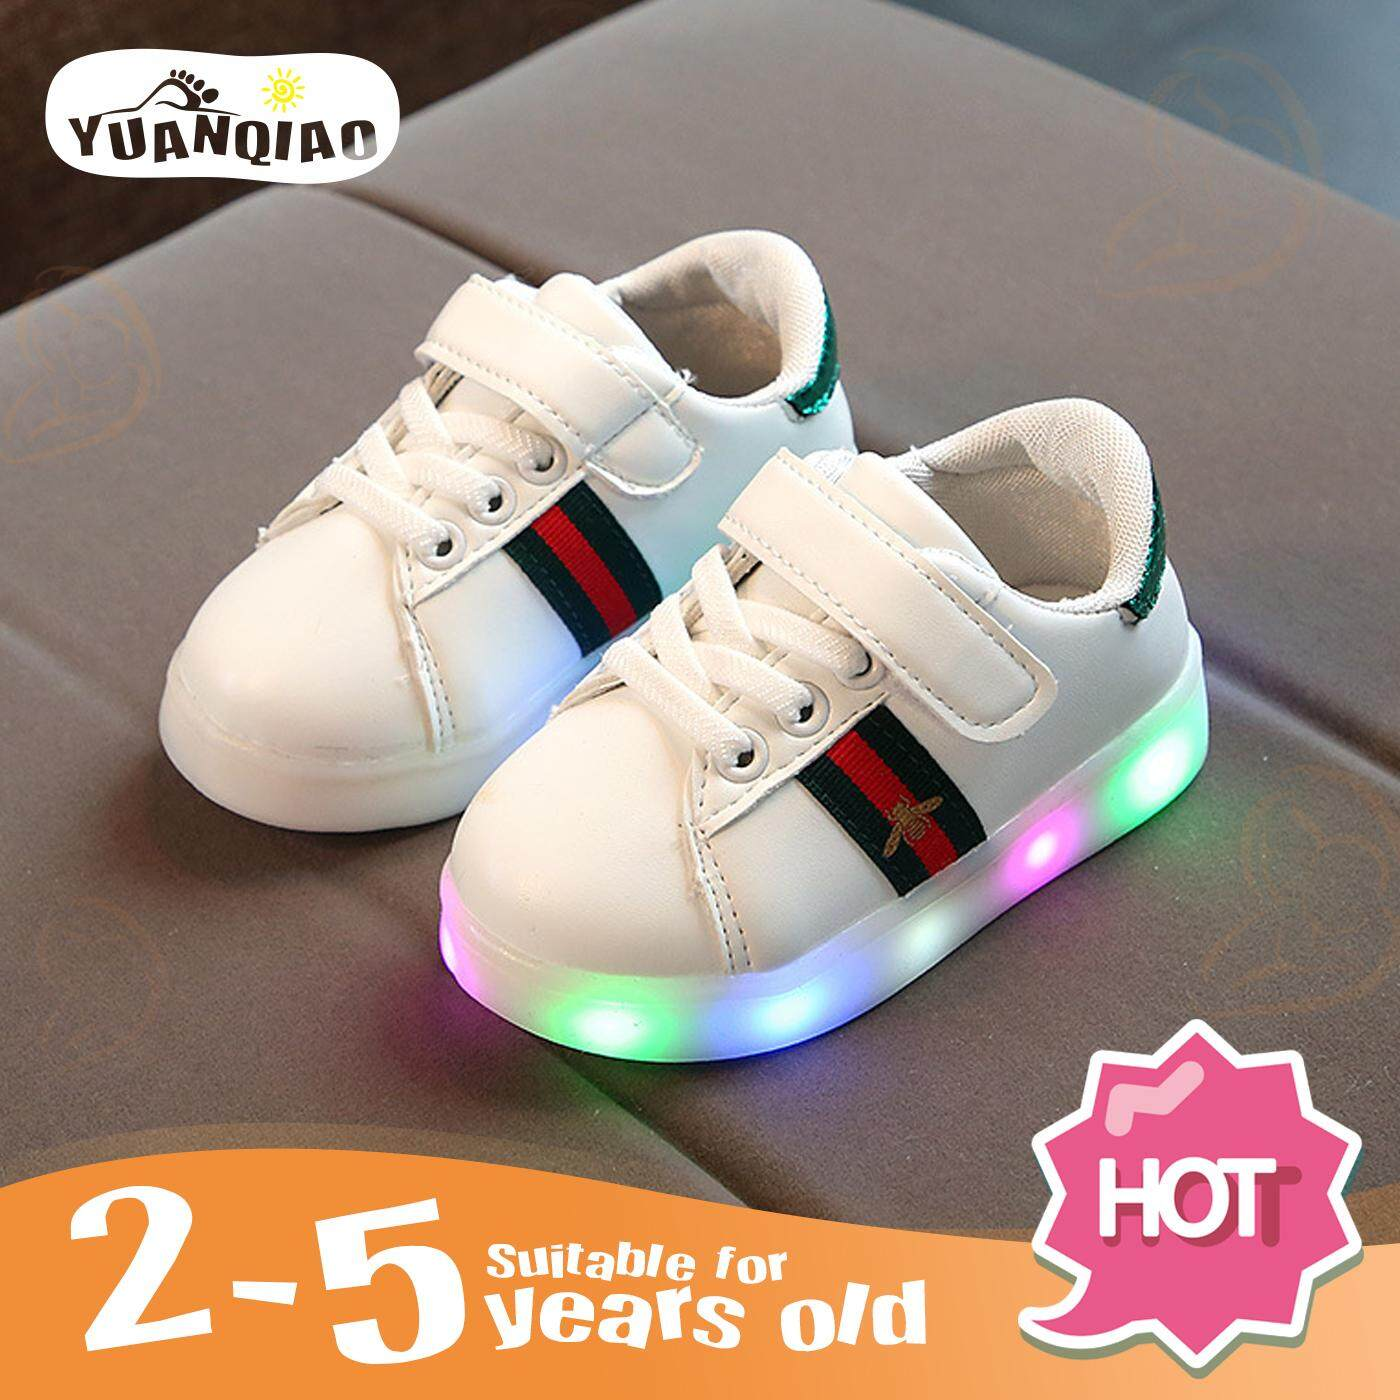 4a4652a1ec3 YUANQIAO Children Shoes Boys Girls Led Light Luminescence Kids Sports Shoes  Fashion Leisure Sneakers Baby Shoes